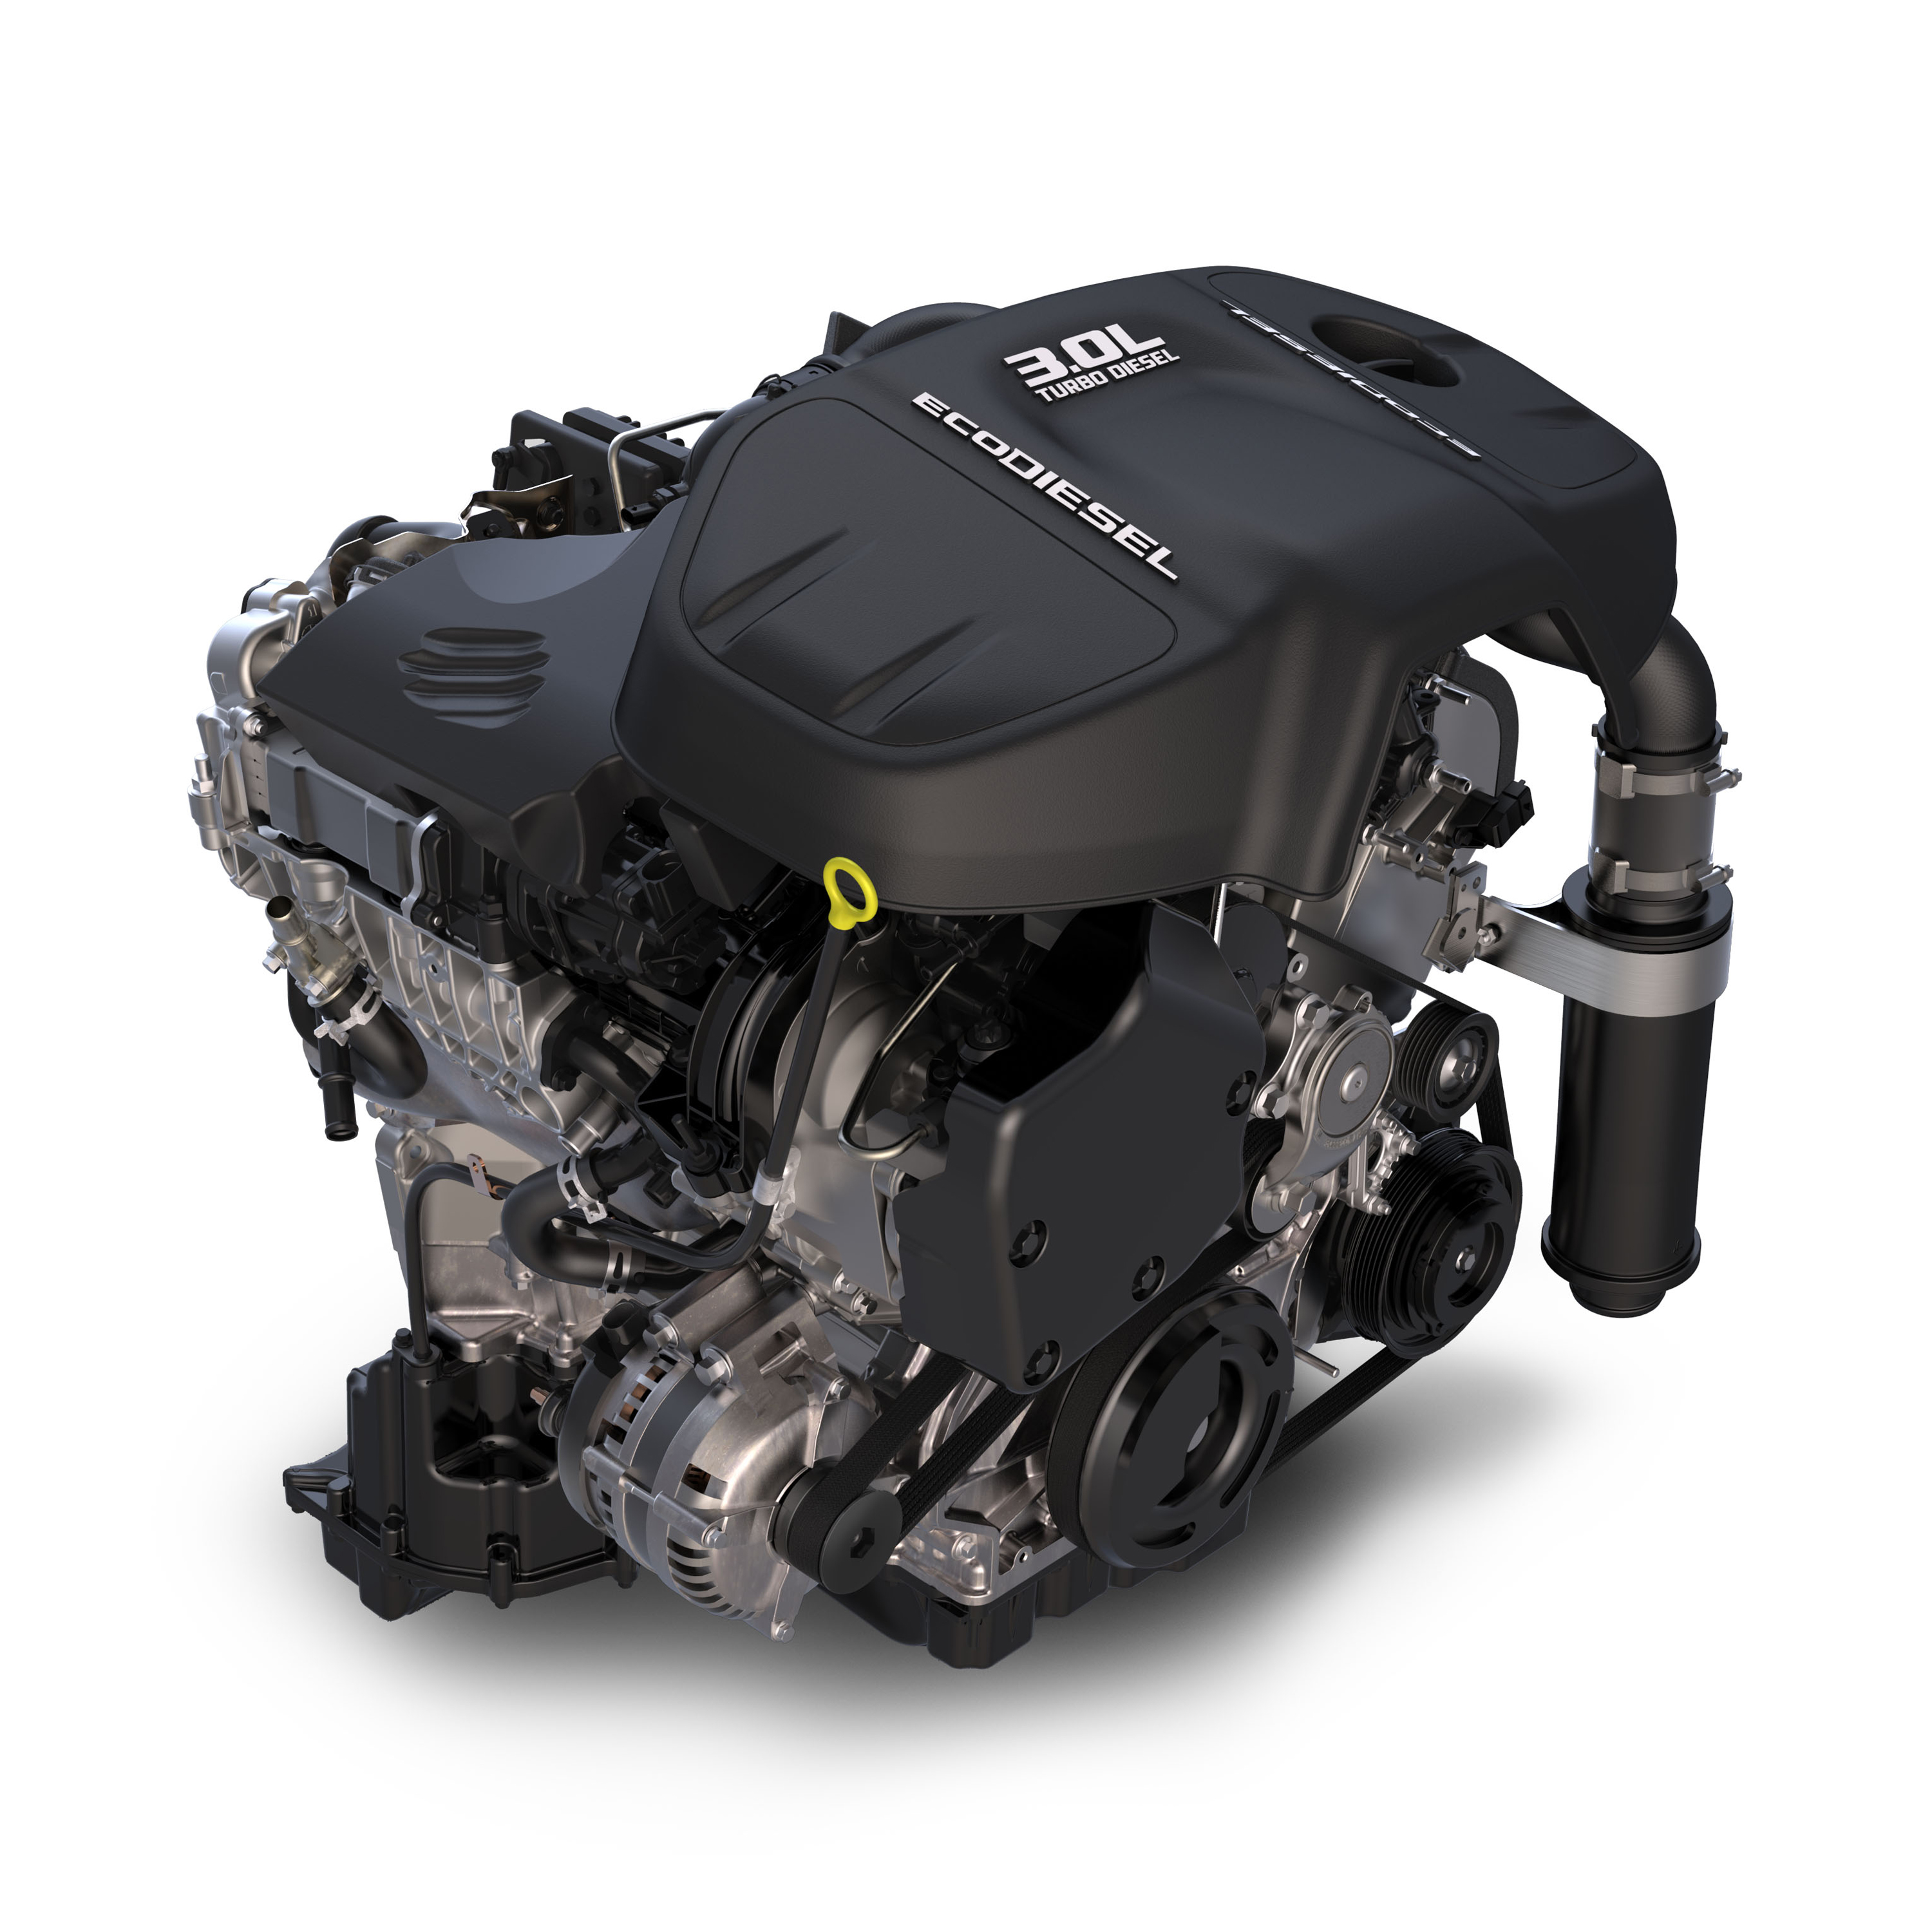 Fiat Chrysler's EcoDiesel V6 Engine Earns Recognition on Wards 10 Best Engines List - The News Wheel